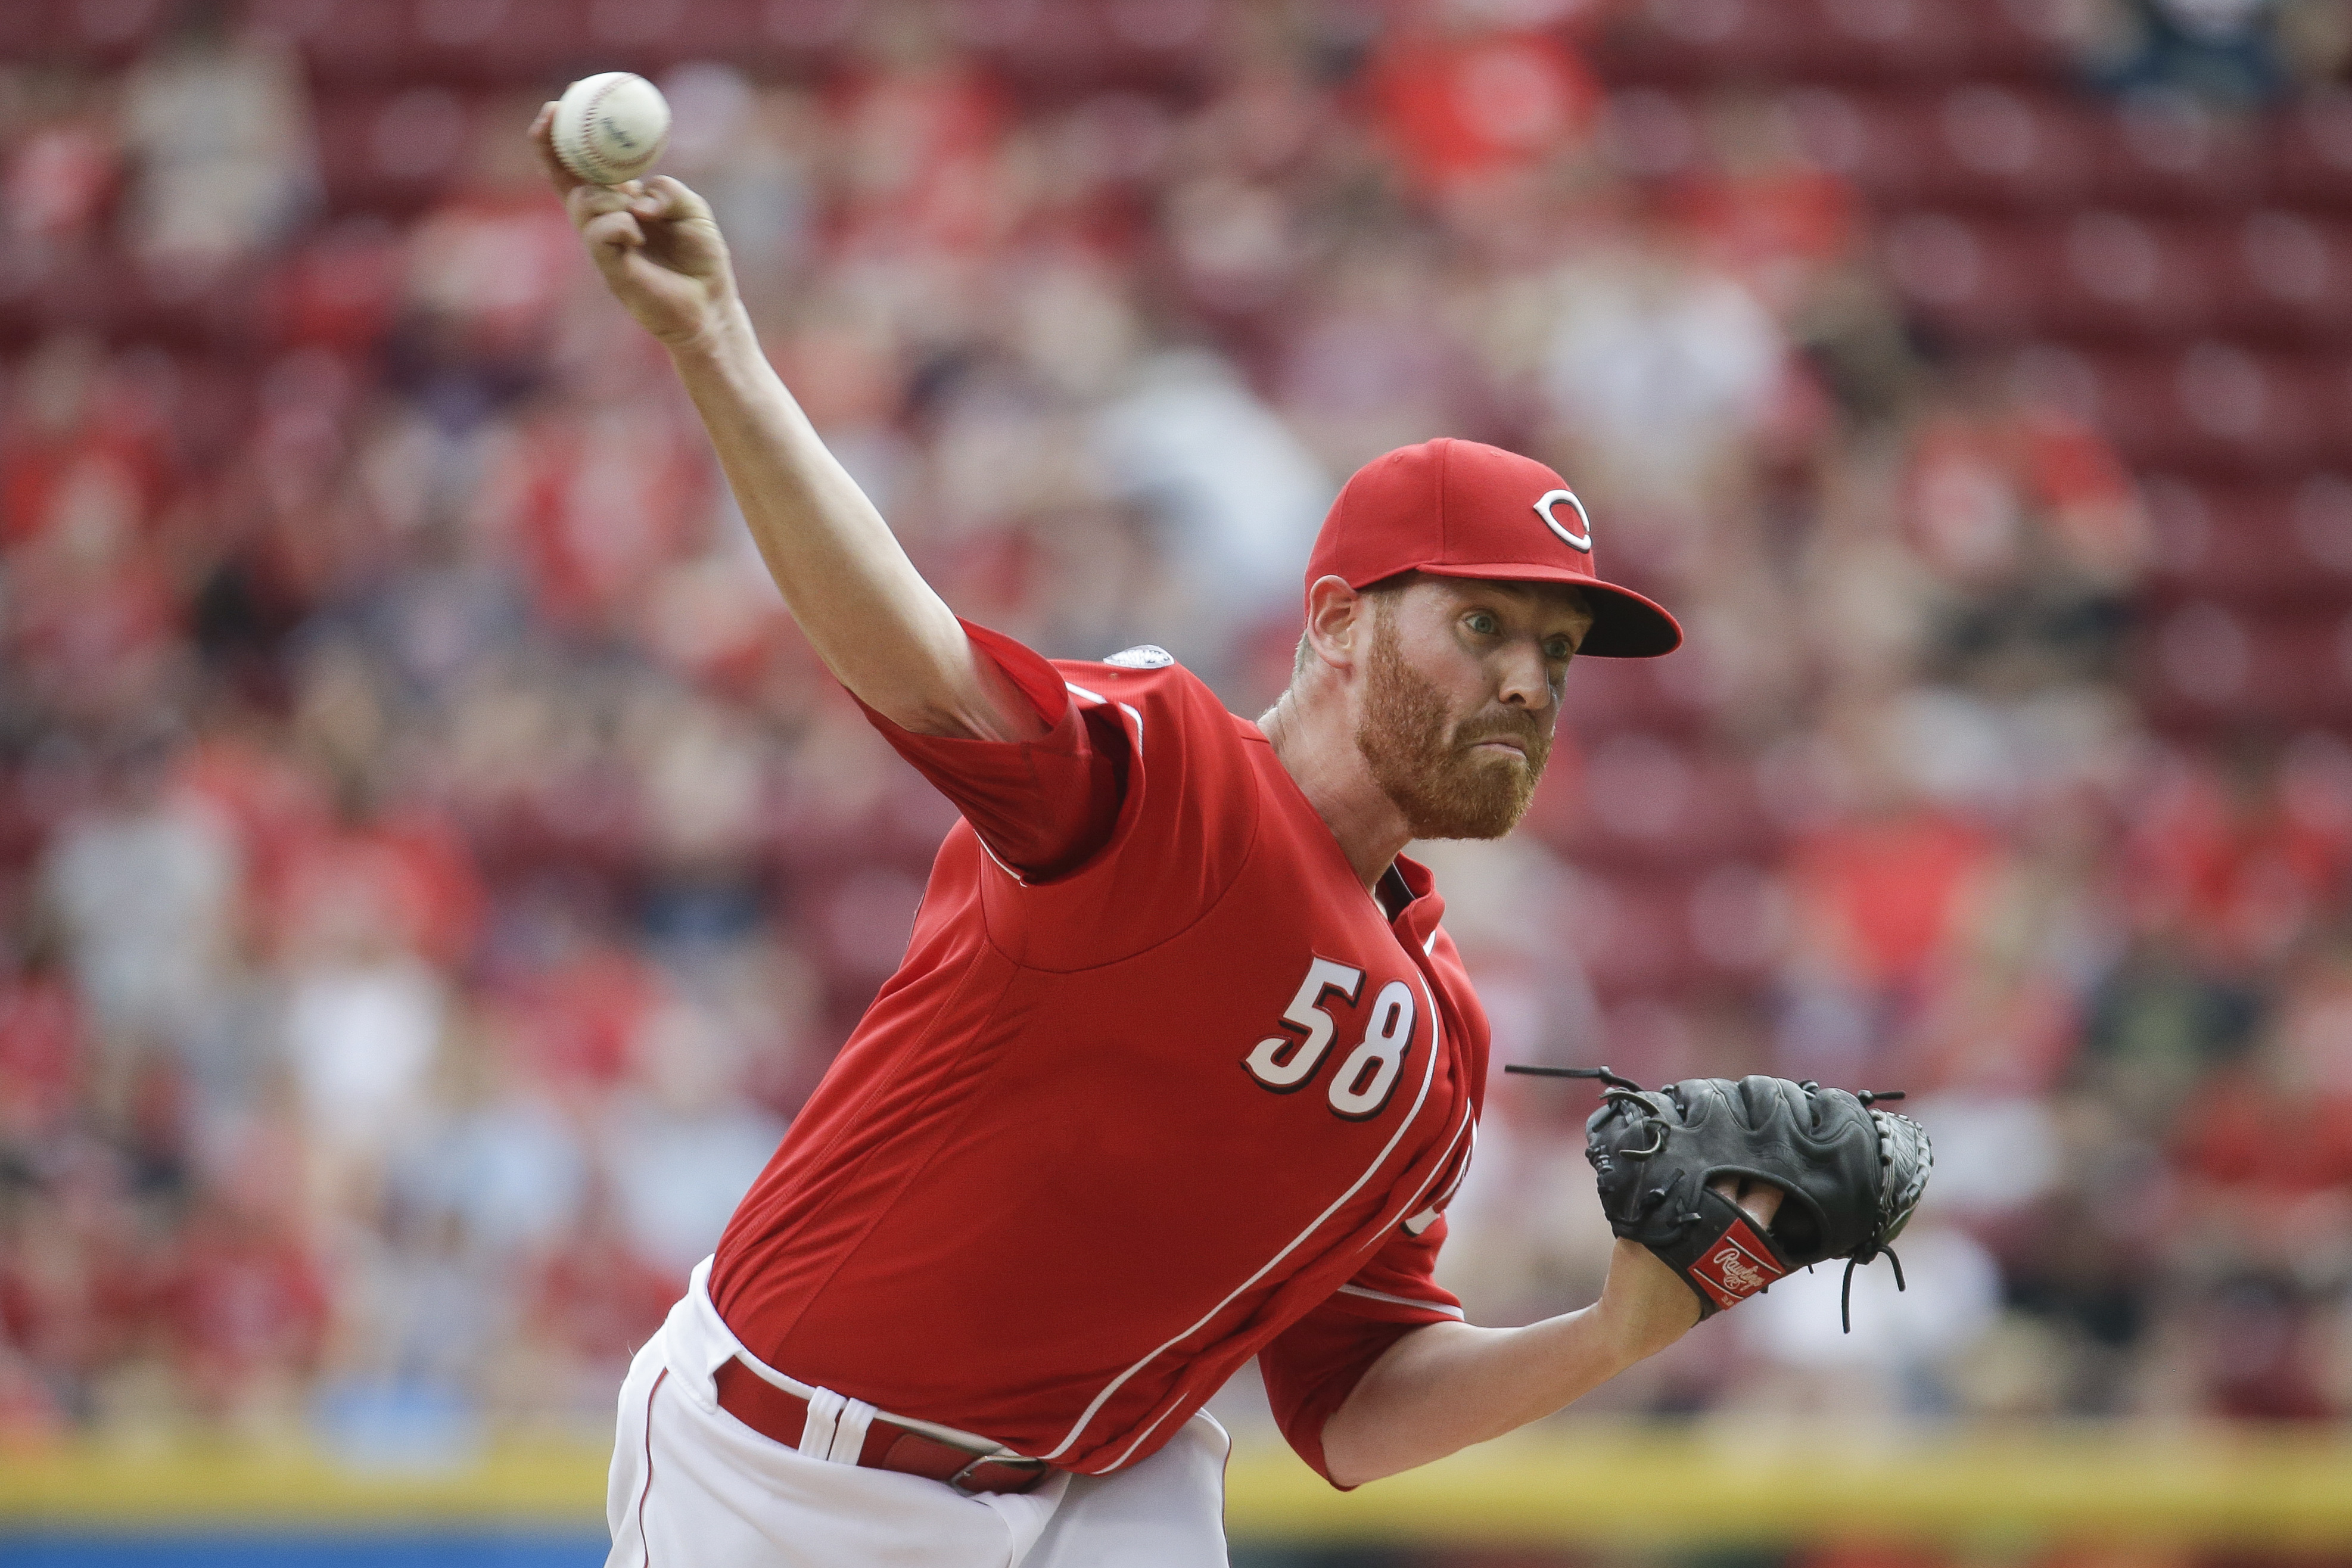 Cincinnati Reds starting pitcher Dan Straily throws in the second inning of a baseball game against the Washington Nationals, Saturday, June 4, 2016, in Cincinnati. (AP Photo/John Minchillo)